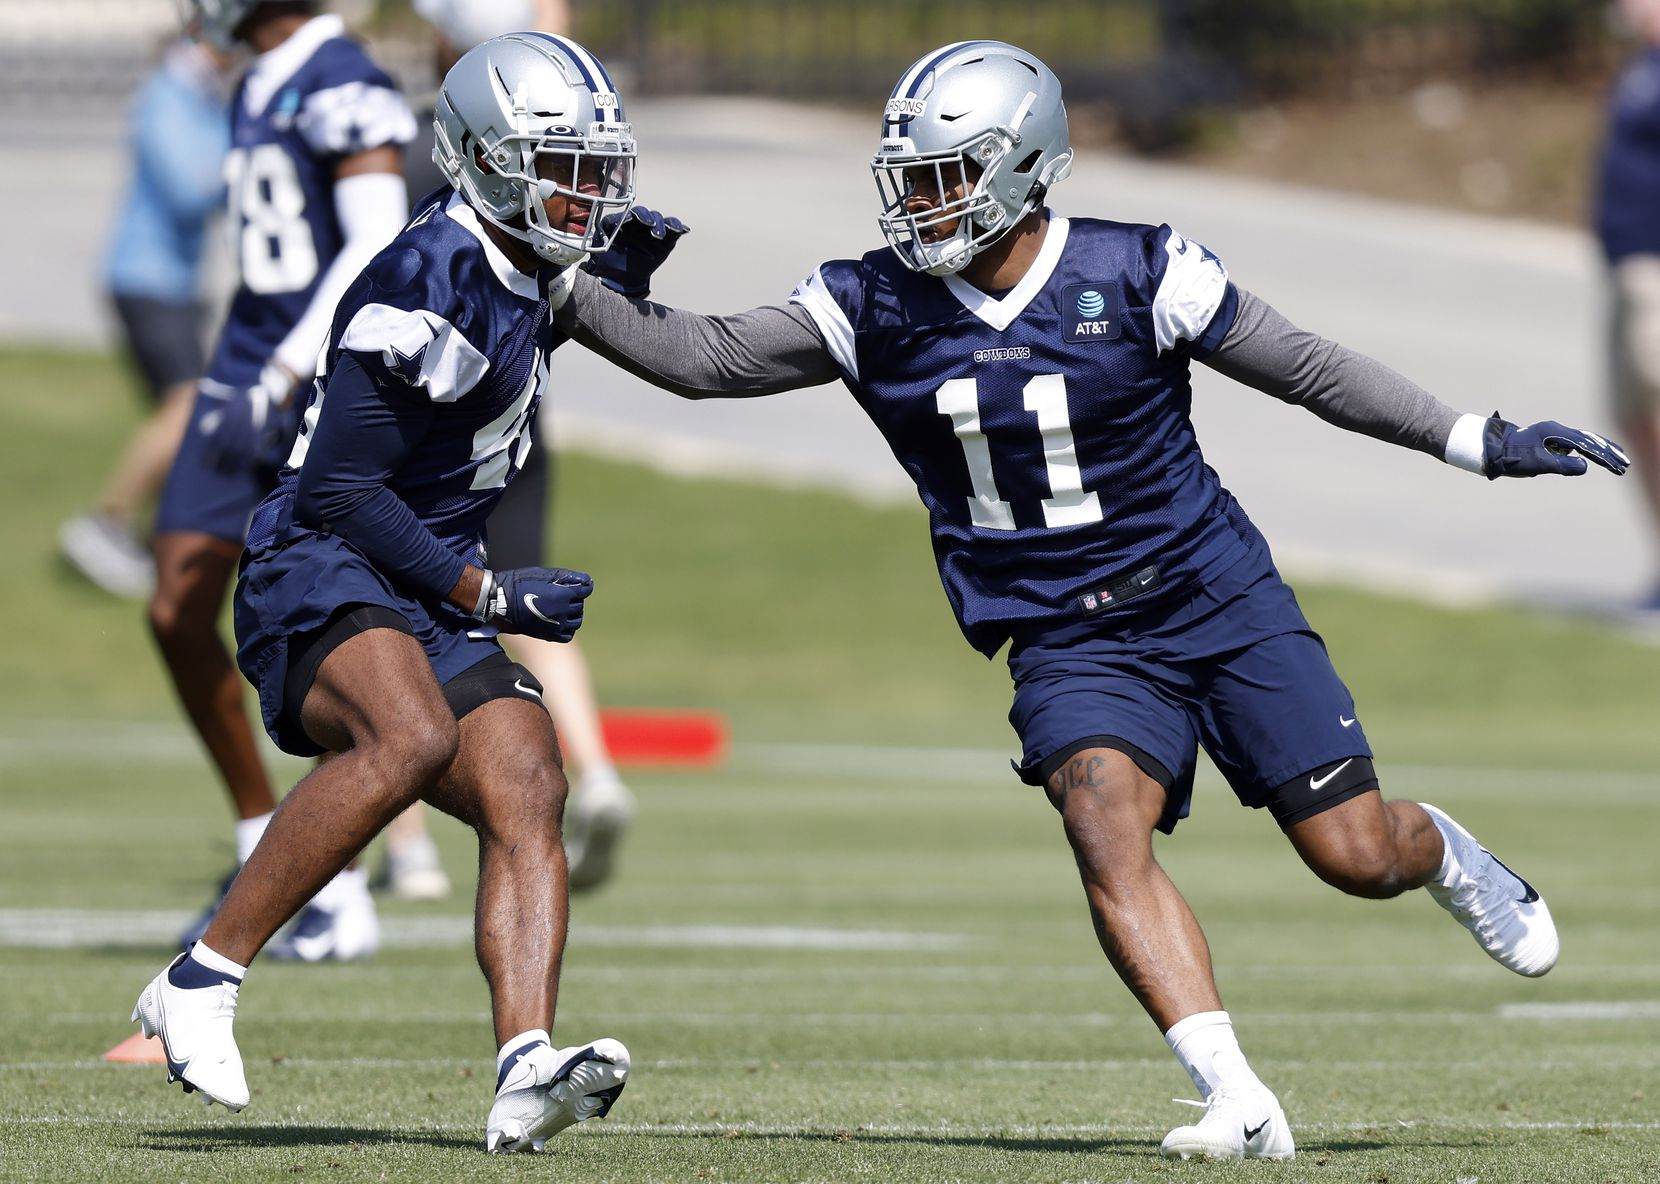 Dallas Cowboys rookie linebackers Micah Parsons (11) covers Jabril Cox (48) during individual drills at rookie minicamp at  The Star in Frisco, Texas, Saturday, May 15, 2021. (Tom Fox/The Dallas Morning News)